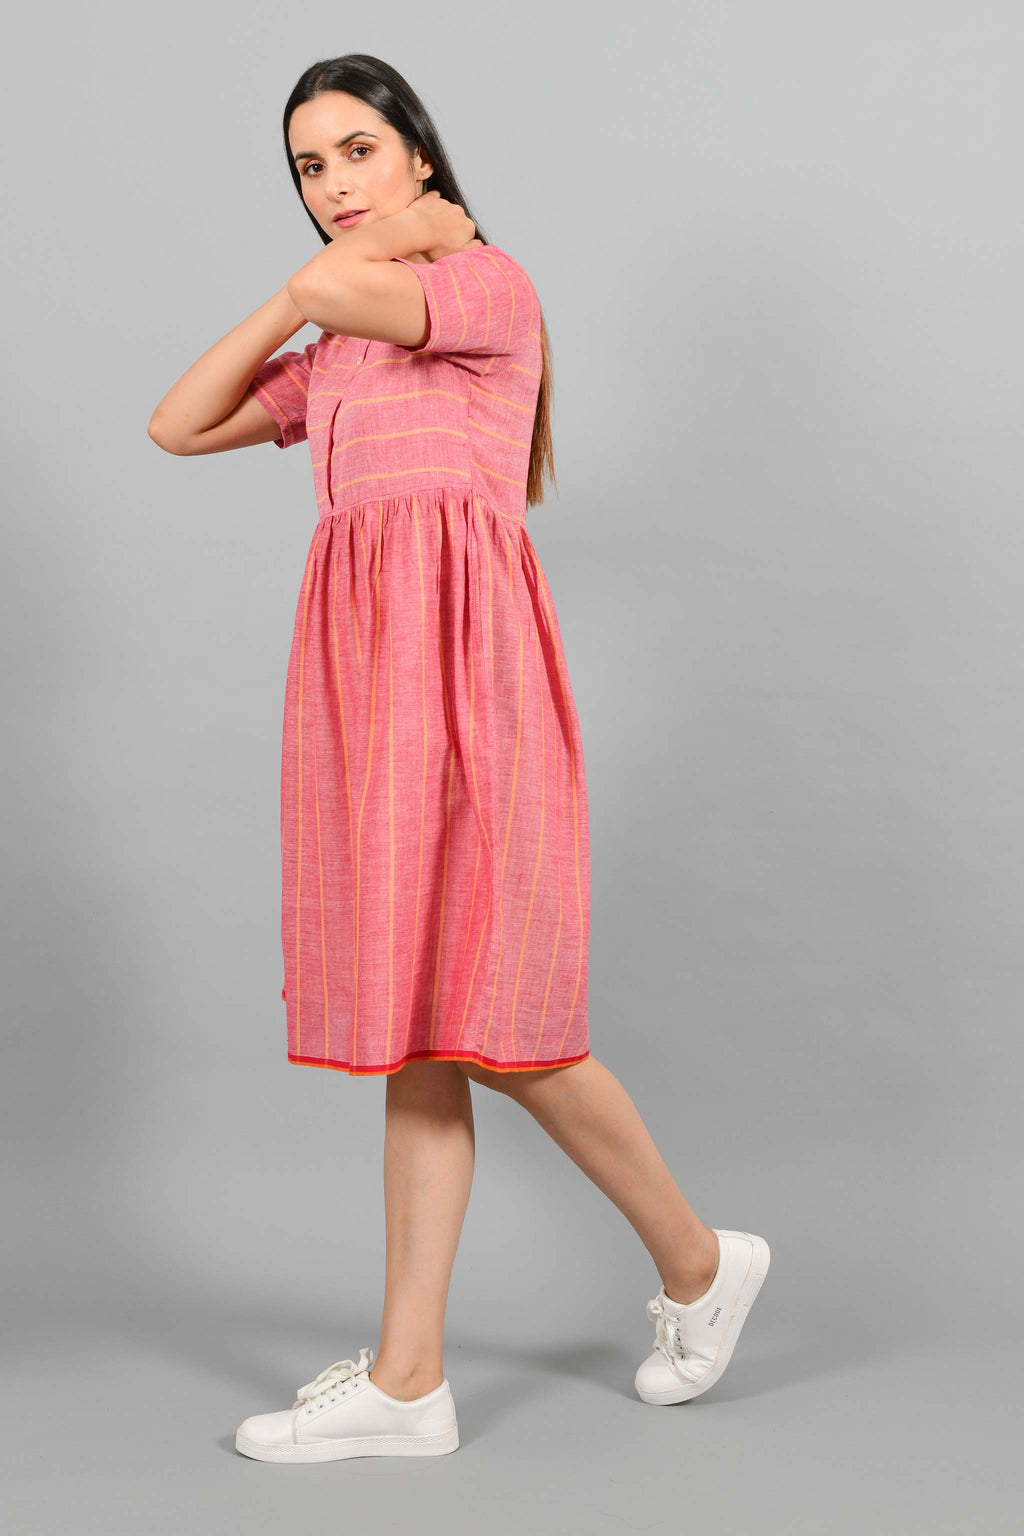 Side walking pose of an Indian female womenswear fashion model in a red chambray handspun and handwoven khadi cotton with orange stripes by Cotton Rack. The dress has front buttoned yoke and gathers at waist.